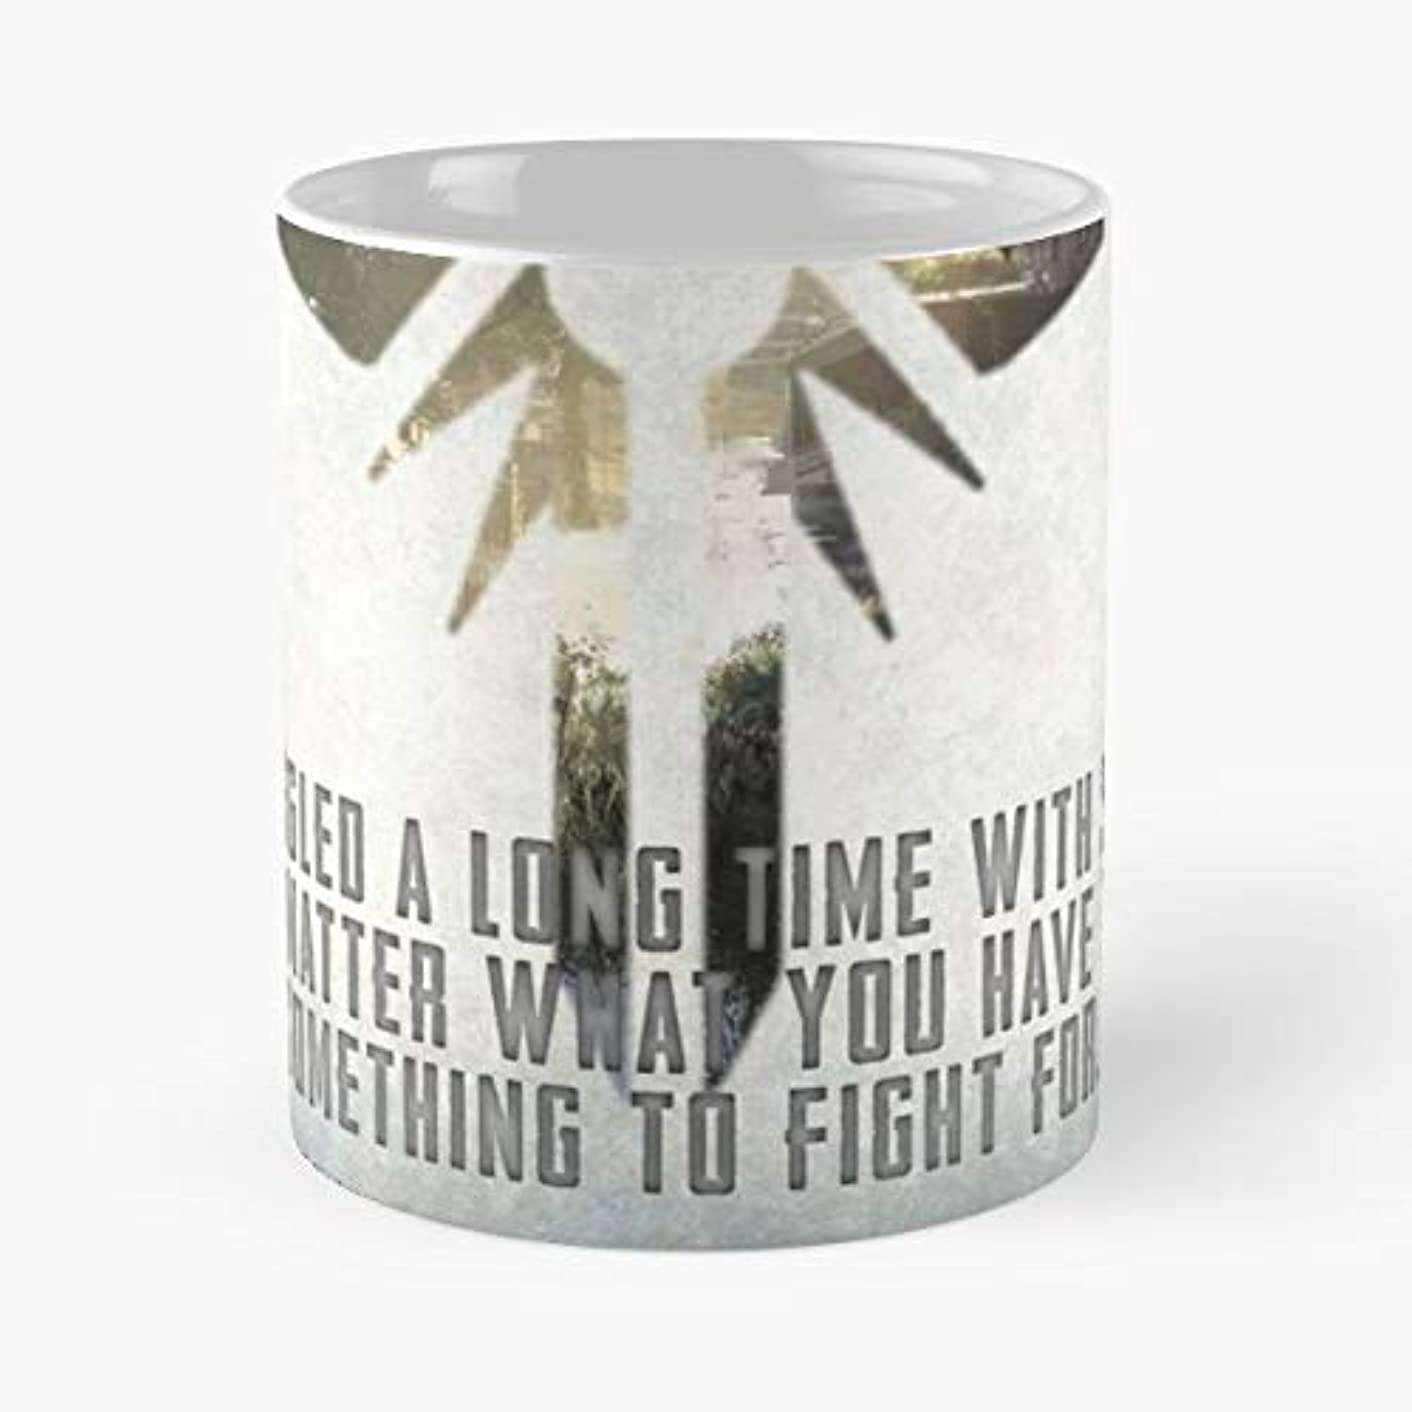 The Last Of Us Tlou Thelastofus Joel Ellie Playstation Ps3 Ps4 Fight Struggle Game Nextgen Firefly -funny Gifts For Men And Women Gift Coffee Mug Tea Cup White-11 Oz.